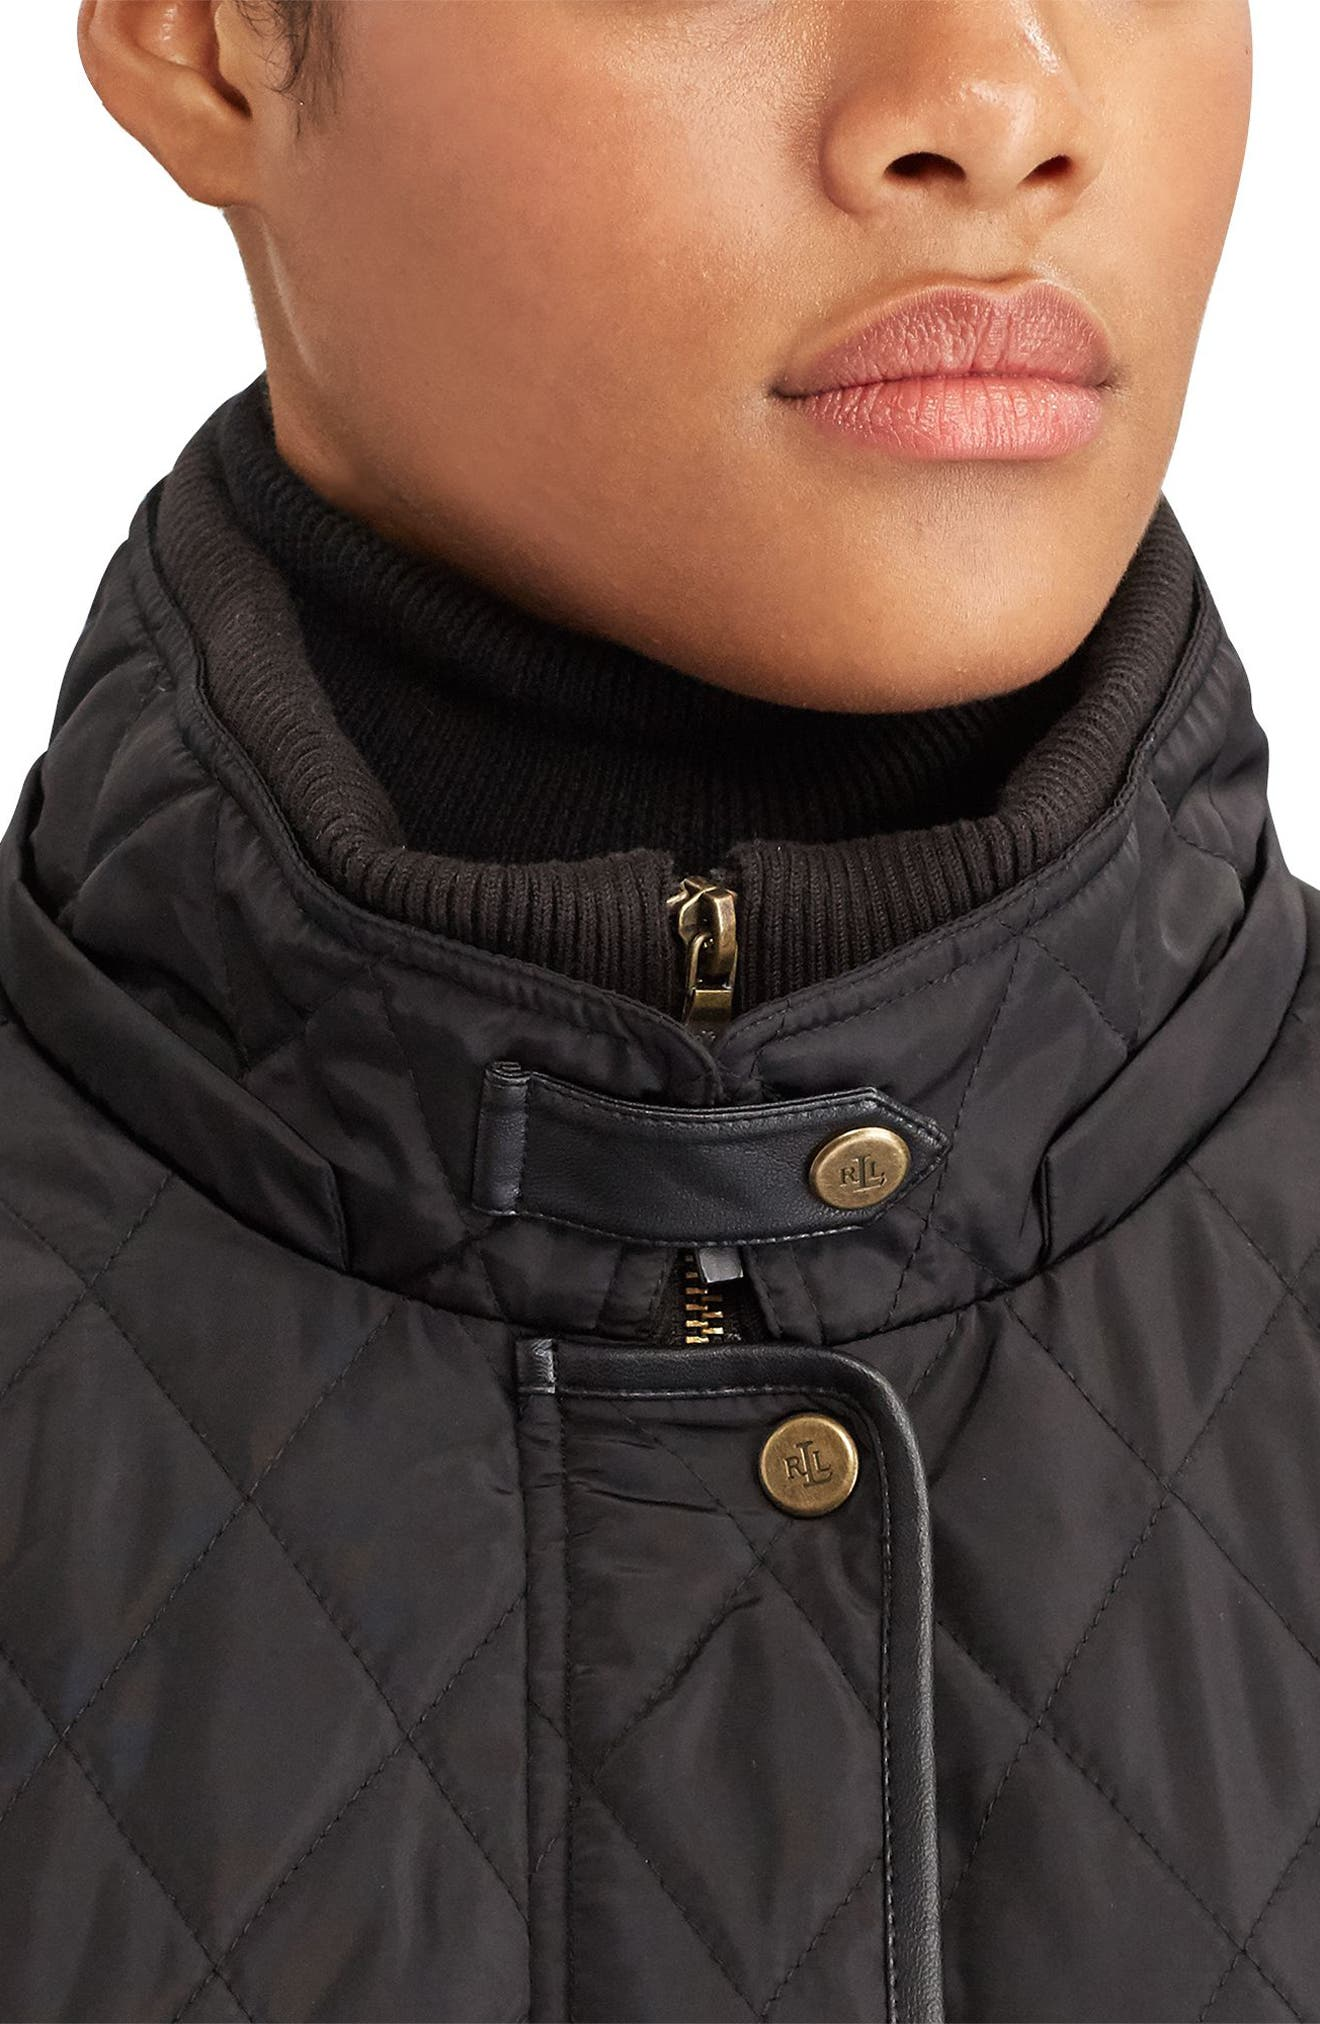 Diamond Quilted Jacket with Faux Leather Trim,                             Alternate thumbnail 3, color,                             Black